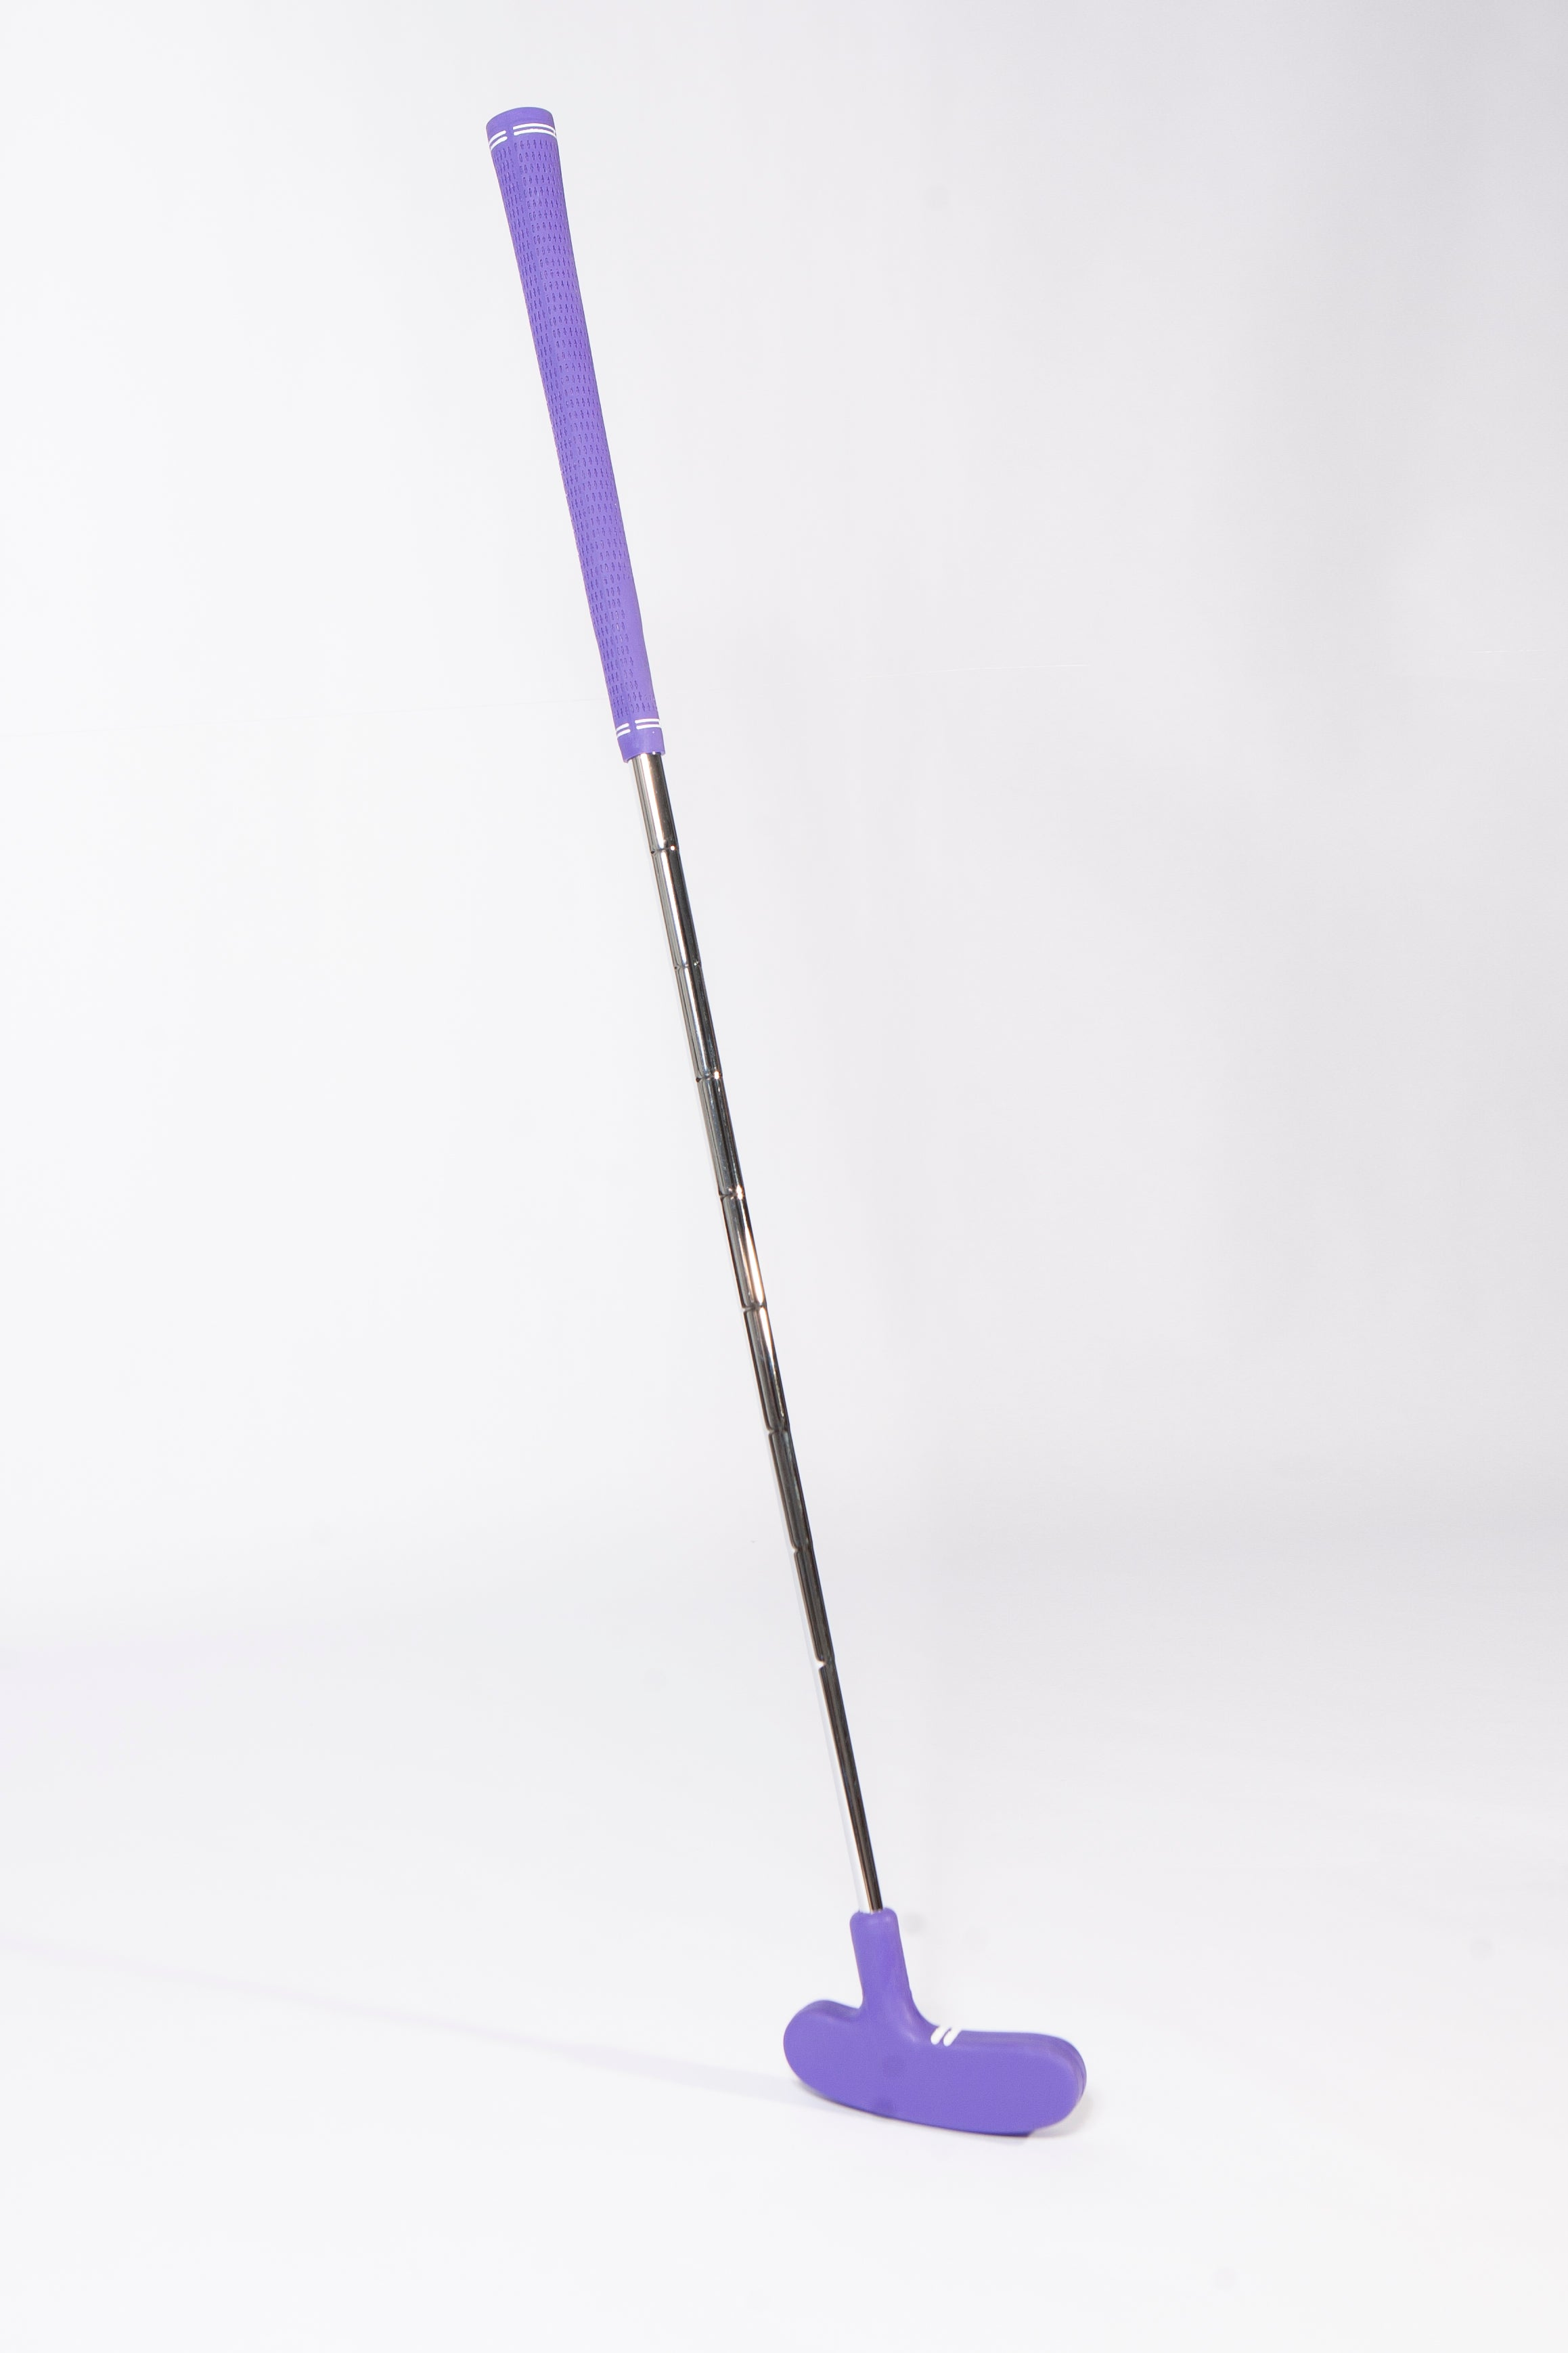 "Adult Rubber Headed Putters (Purple 31"") - Event Stuff Ltd Owns Putterfingers.com!"